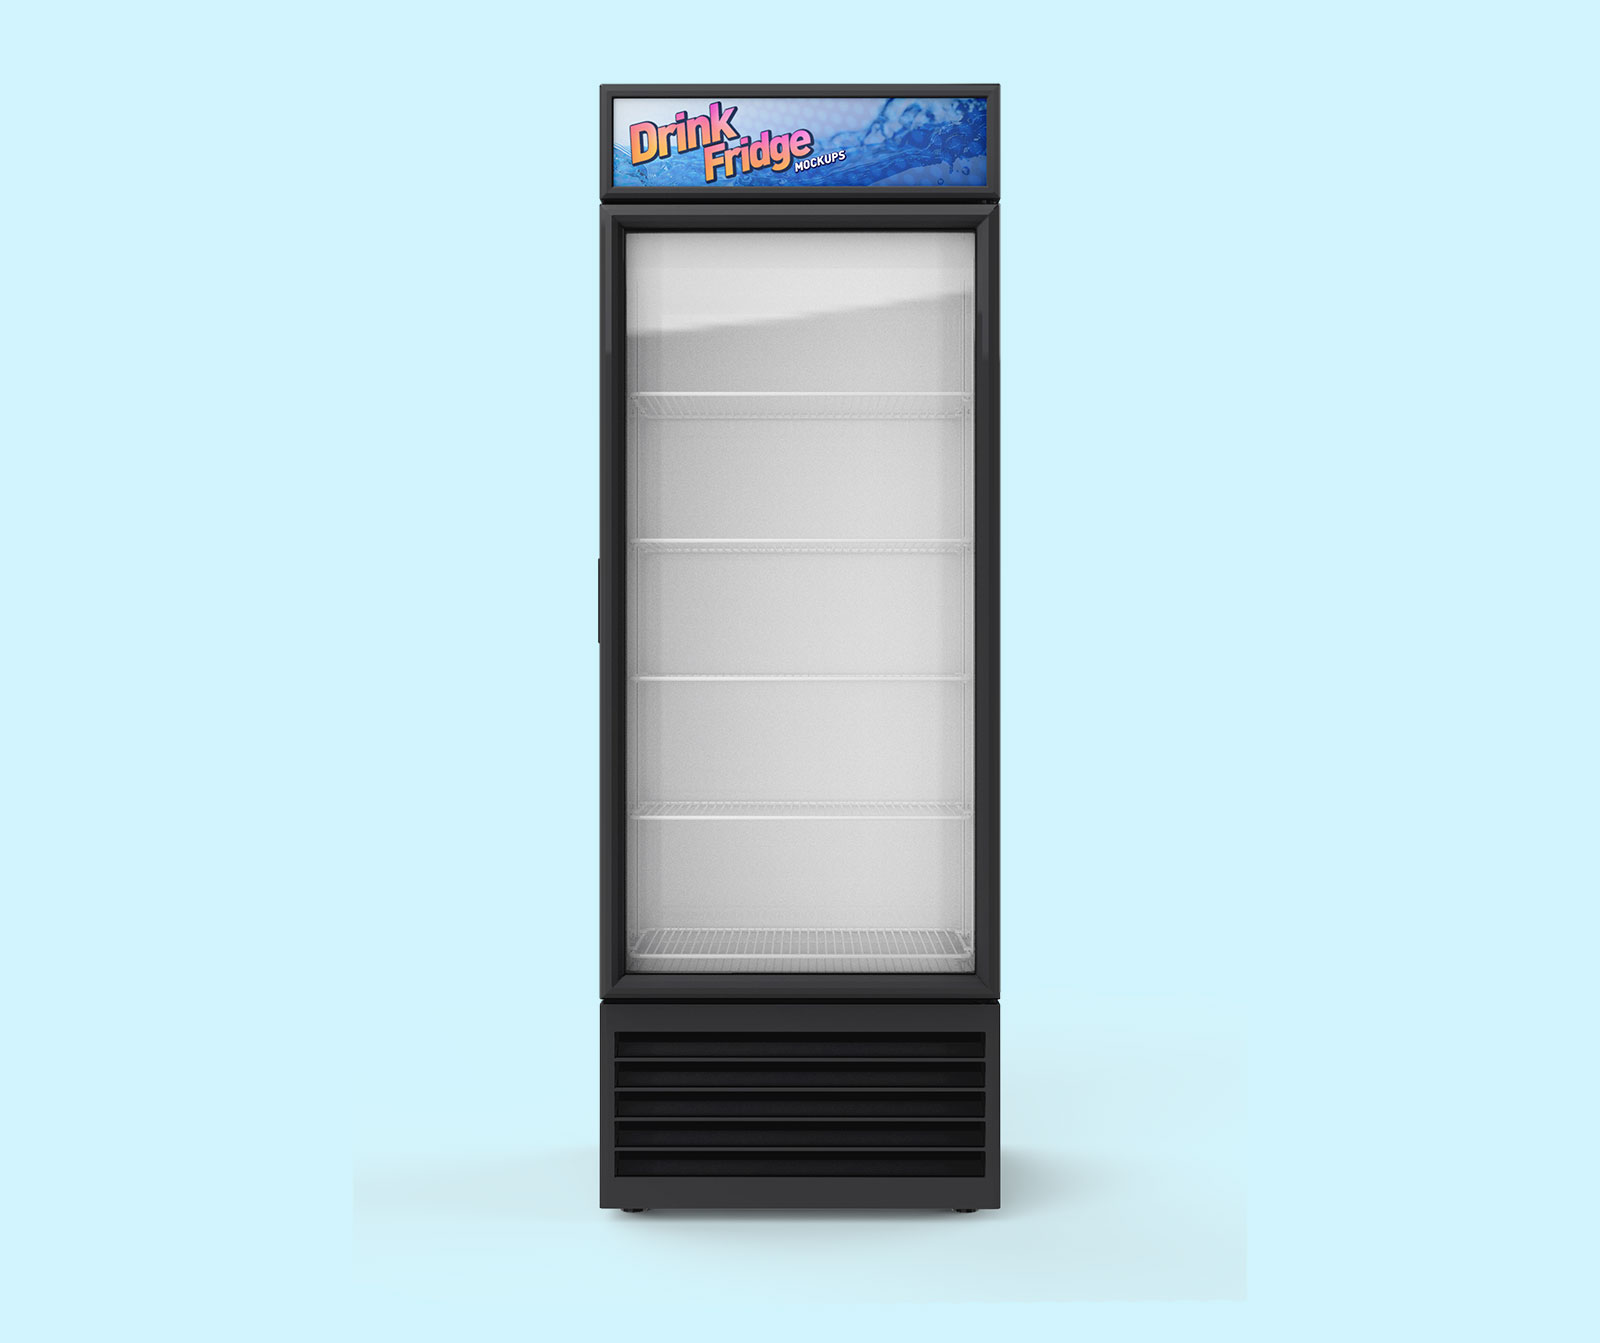 Free-Soft-Drinks-Fridge-Refrigerator-Mockup-PSD-Set-4